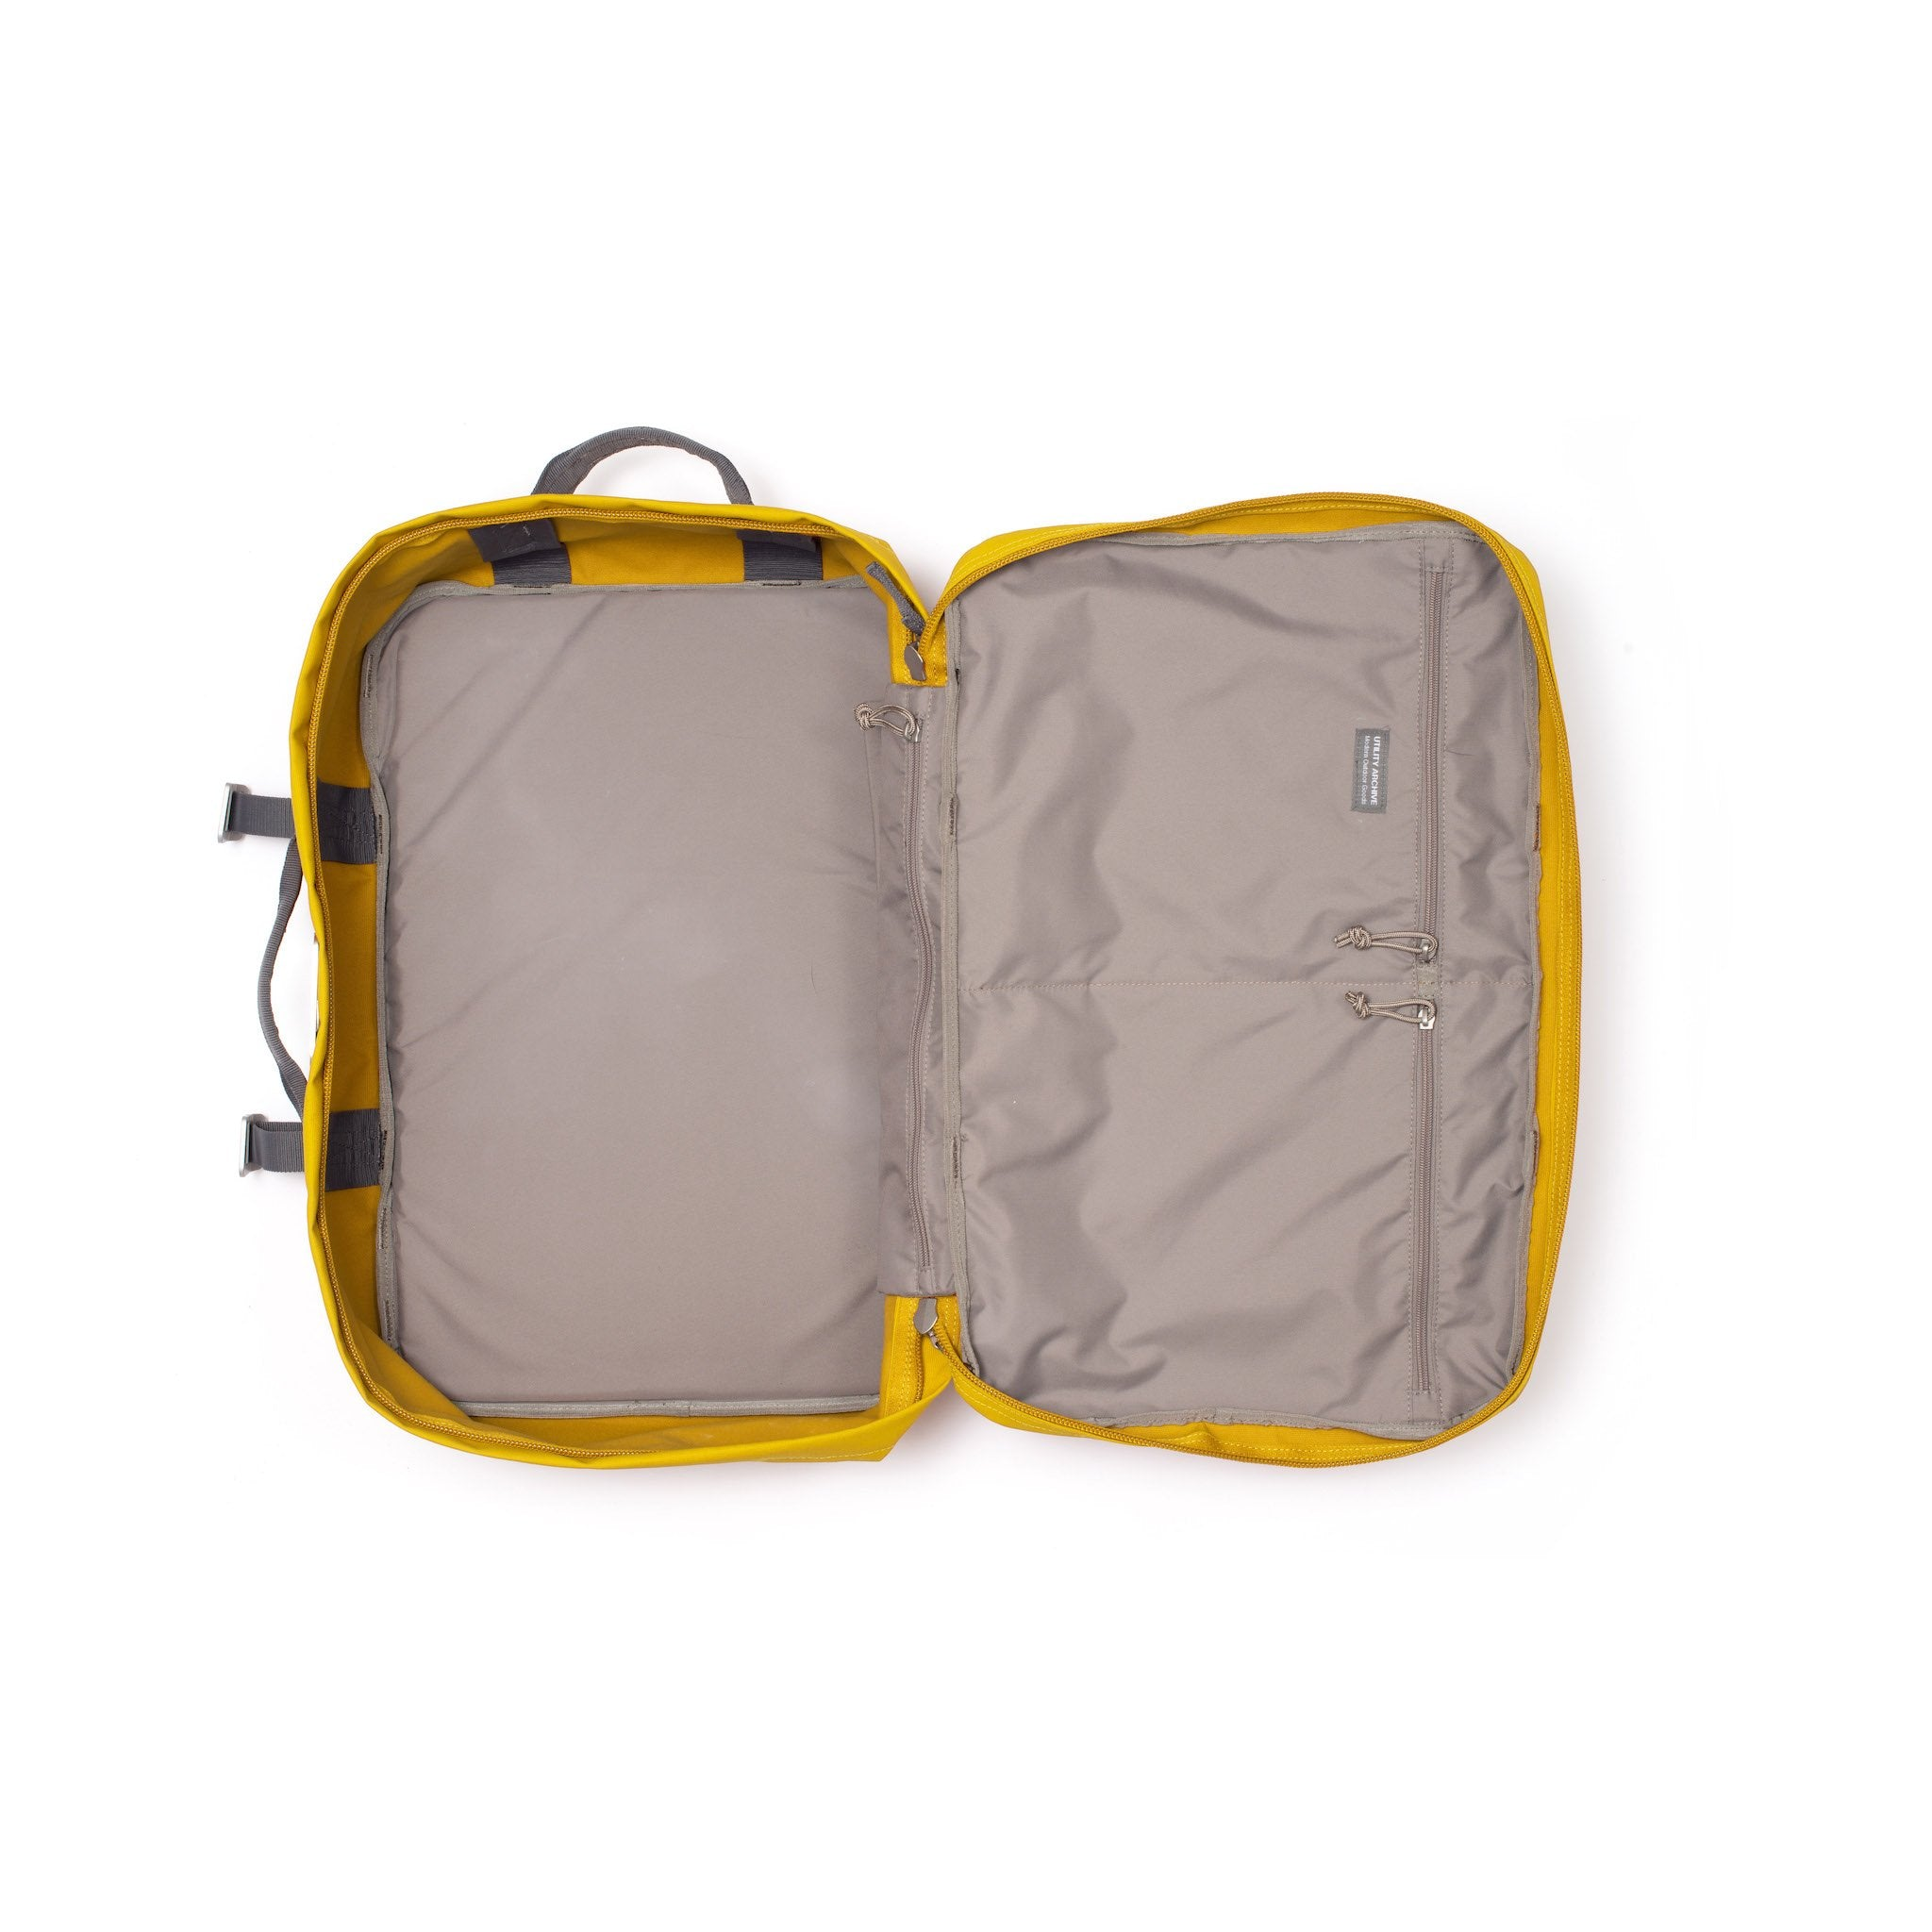 Yellow travel backpack interior.